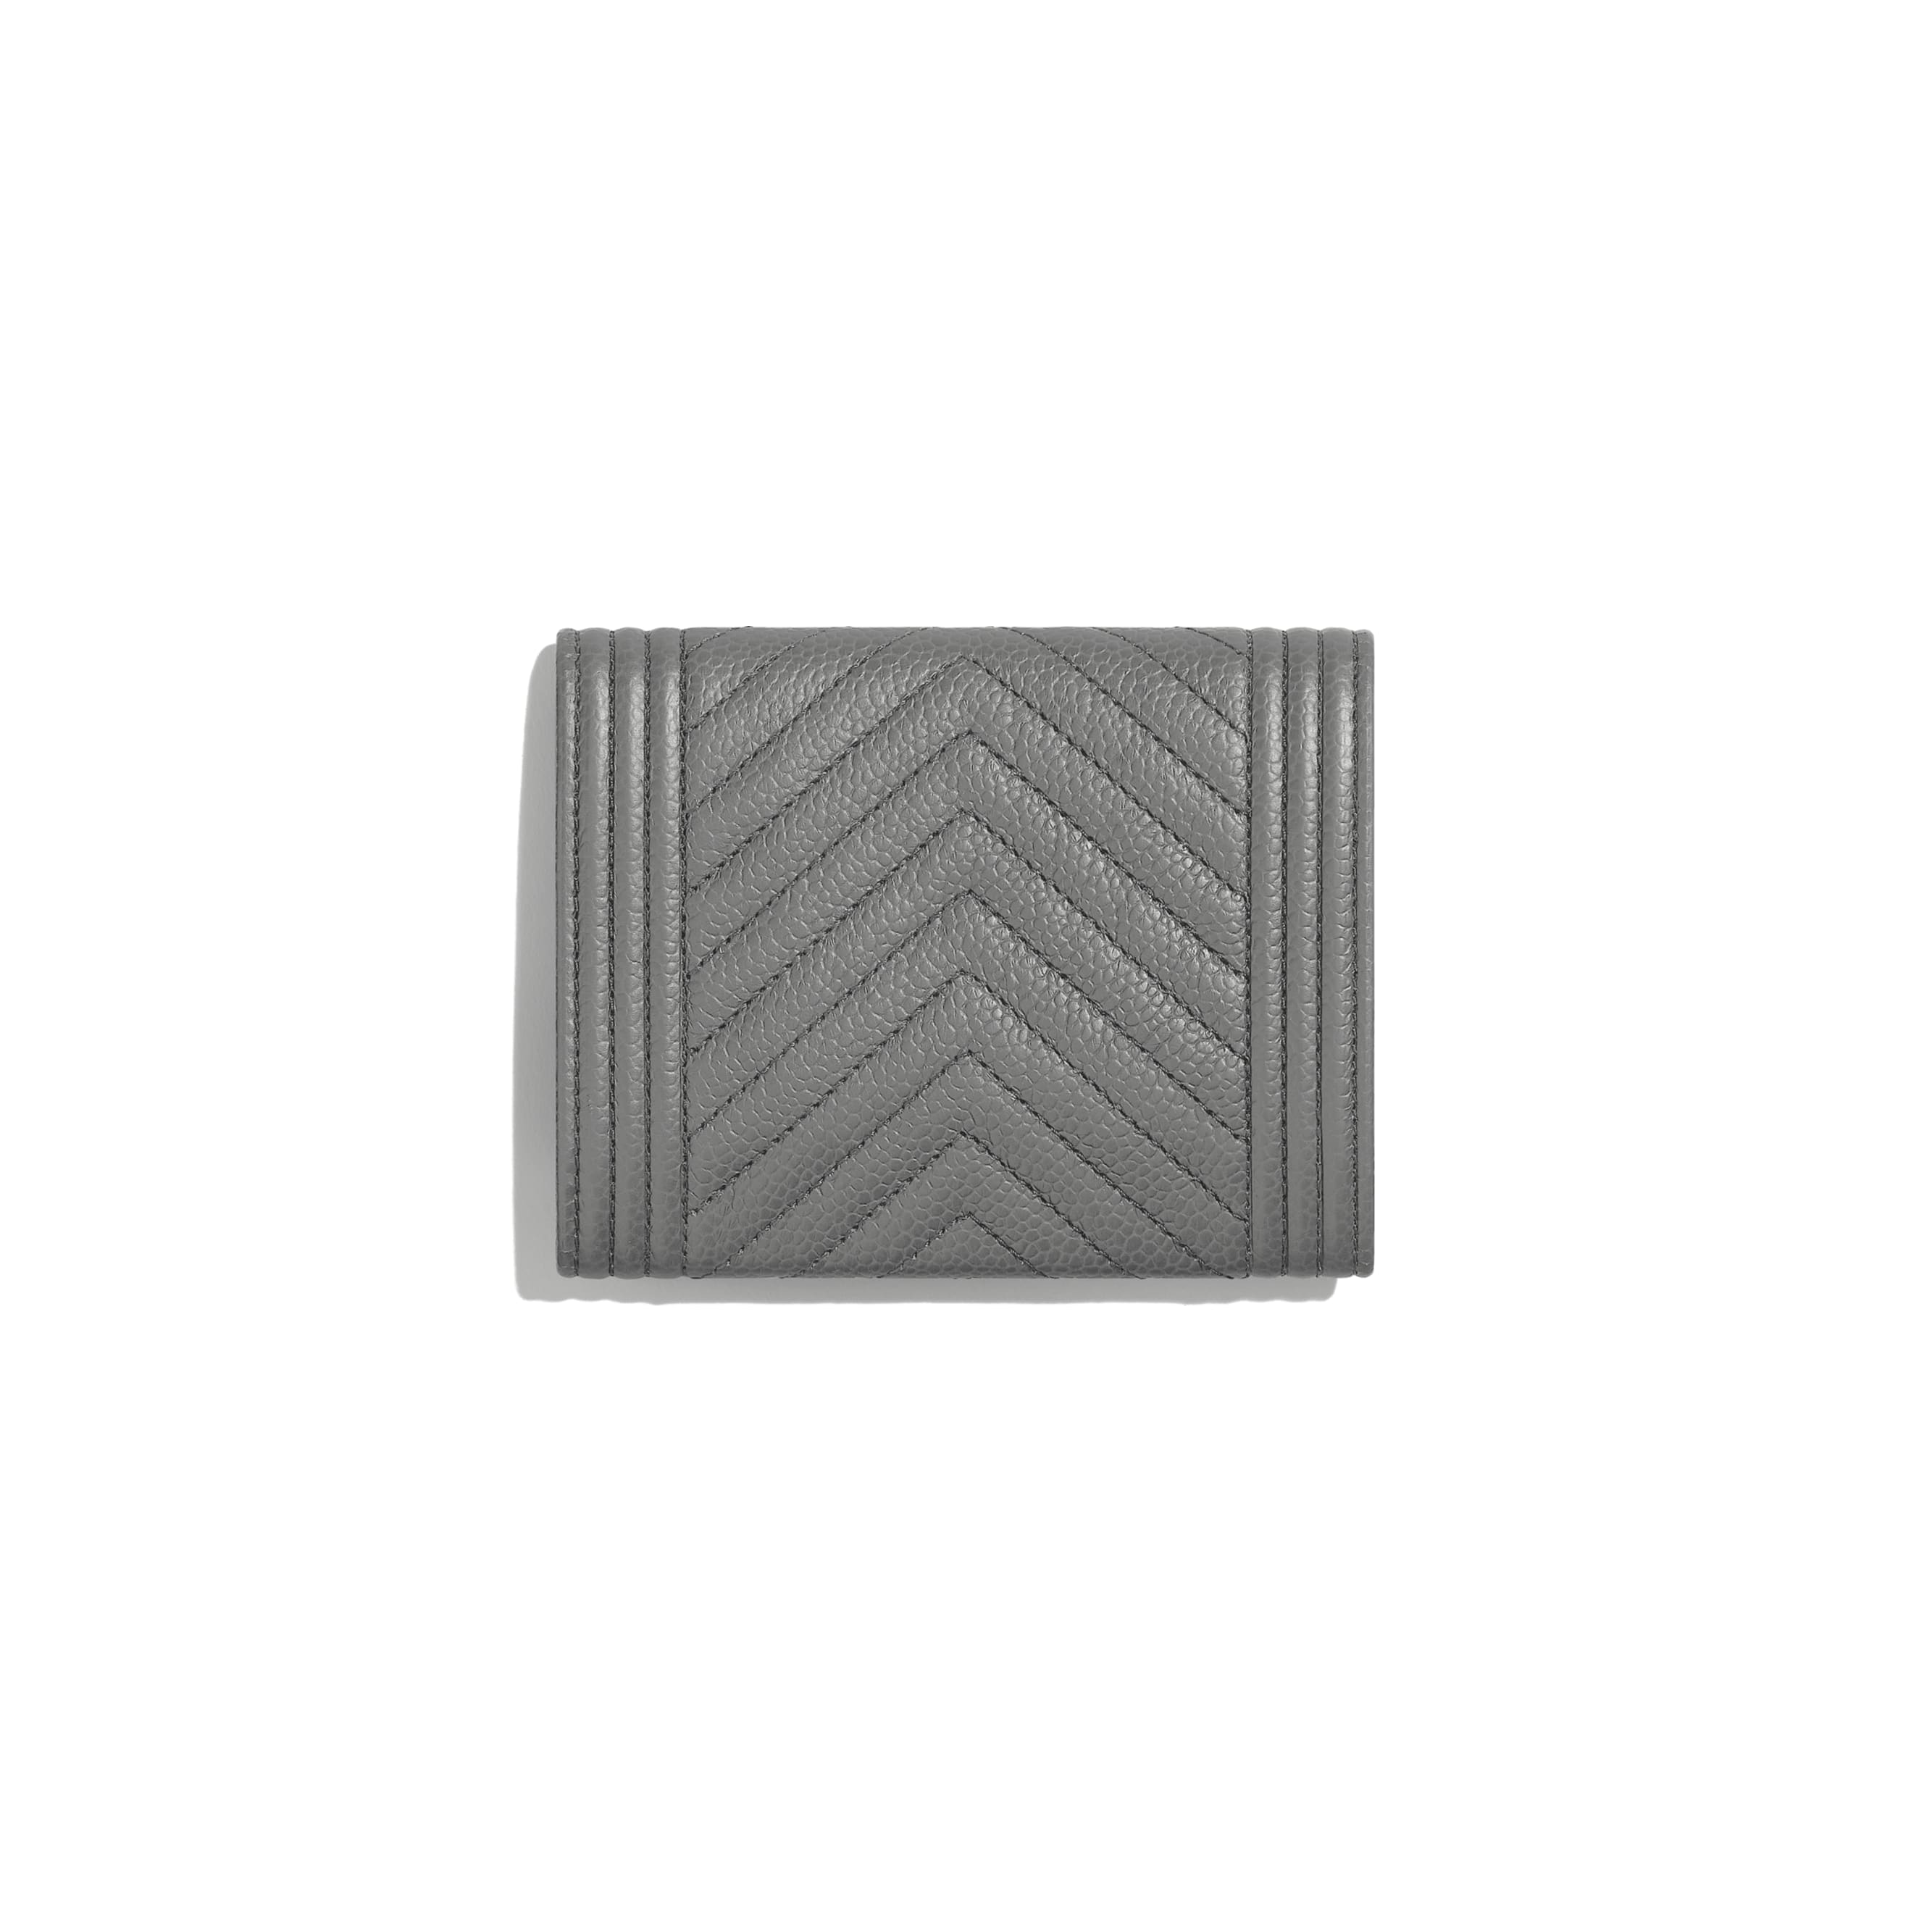 BOY CHANEL Flap Coin Purse - Grey - Grained Calfskin & Ruthenium-Finish Metal - Alternative view - see standard sized version